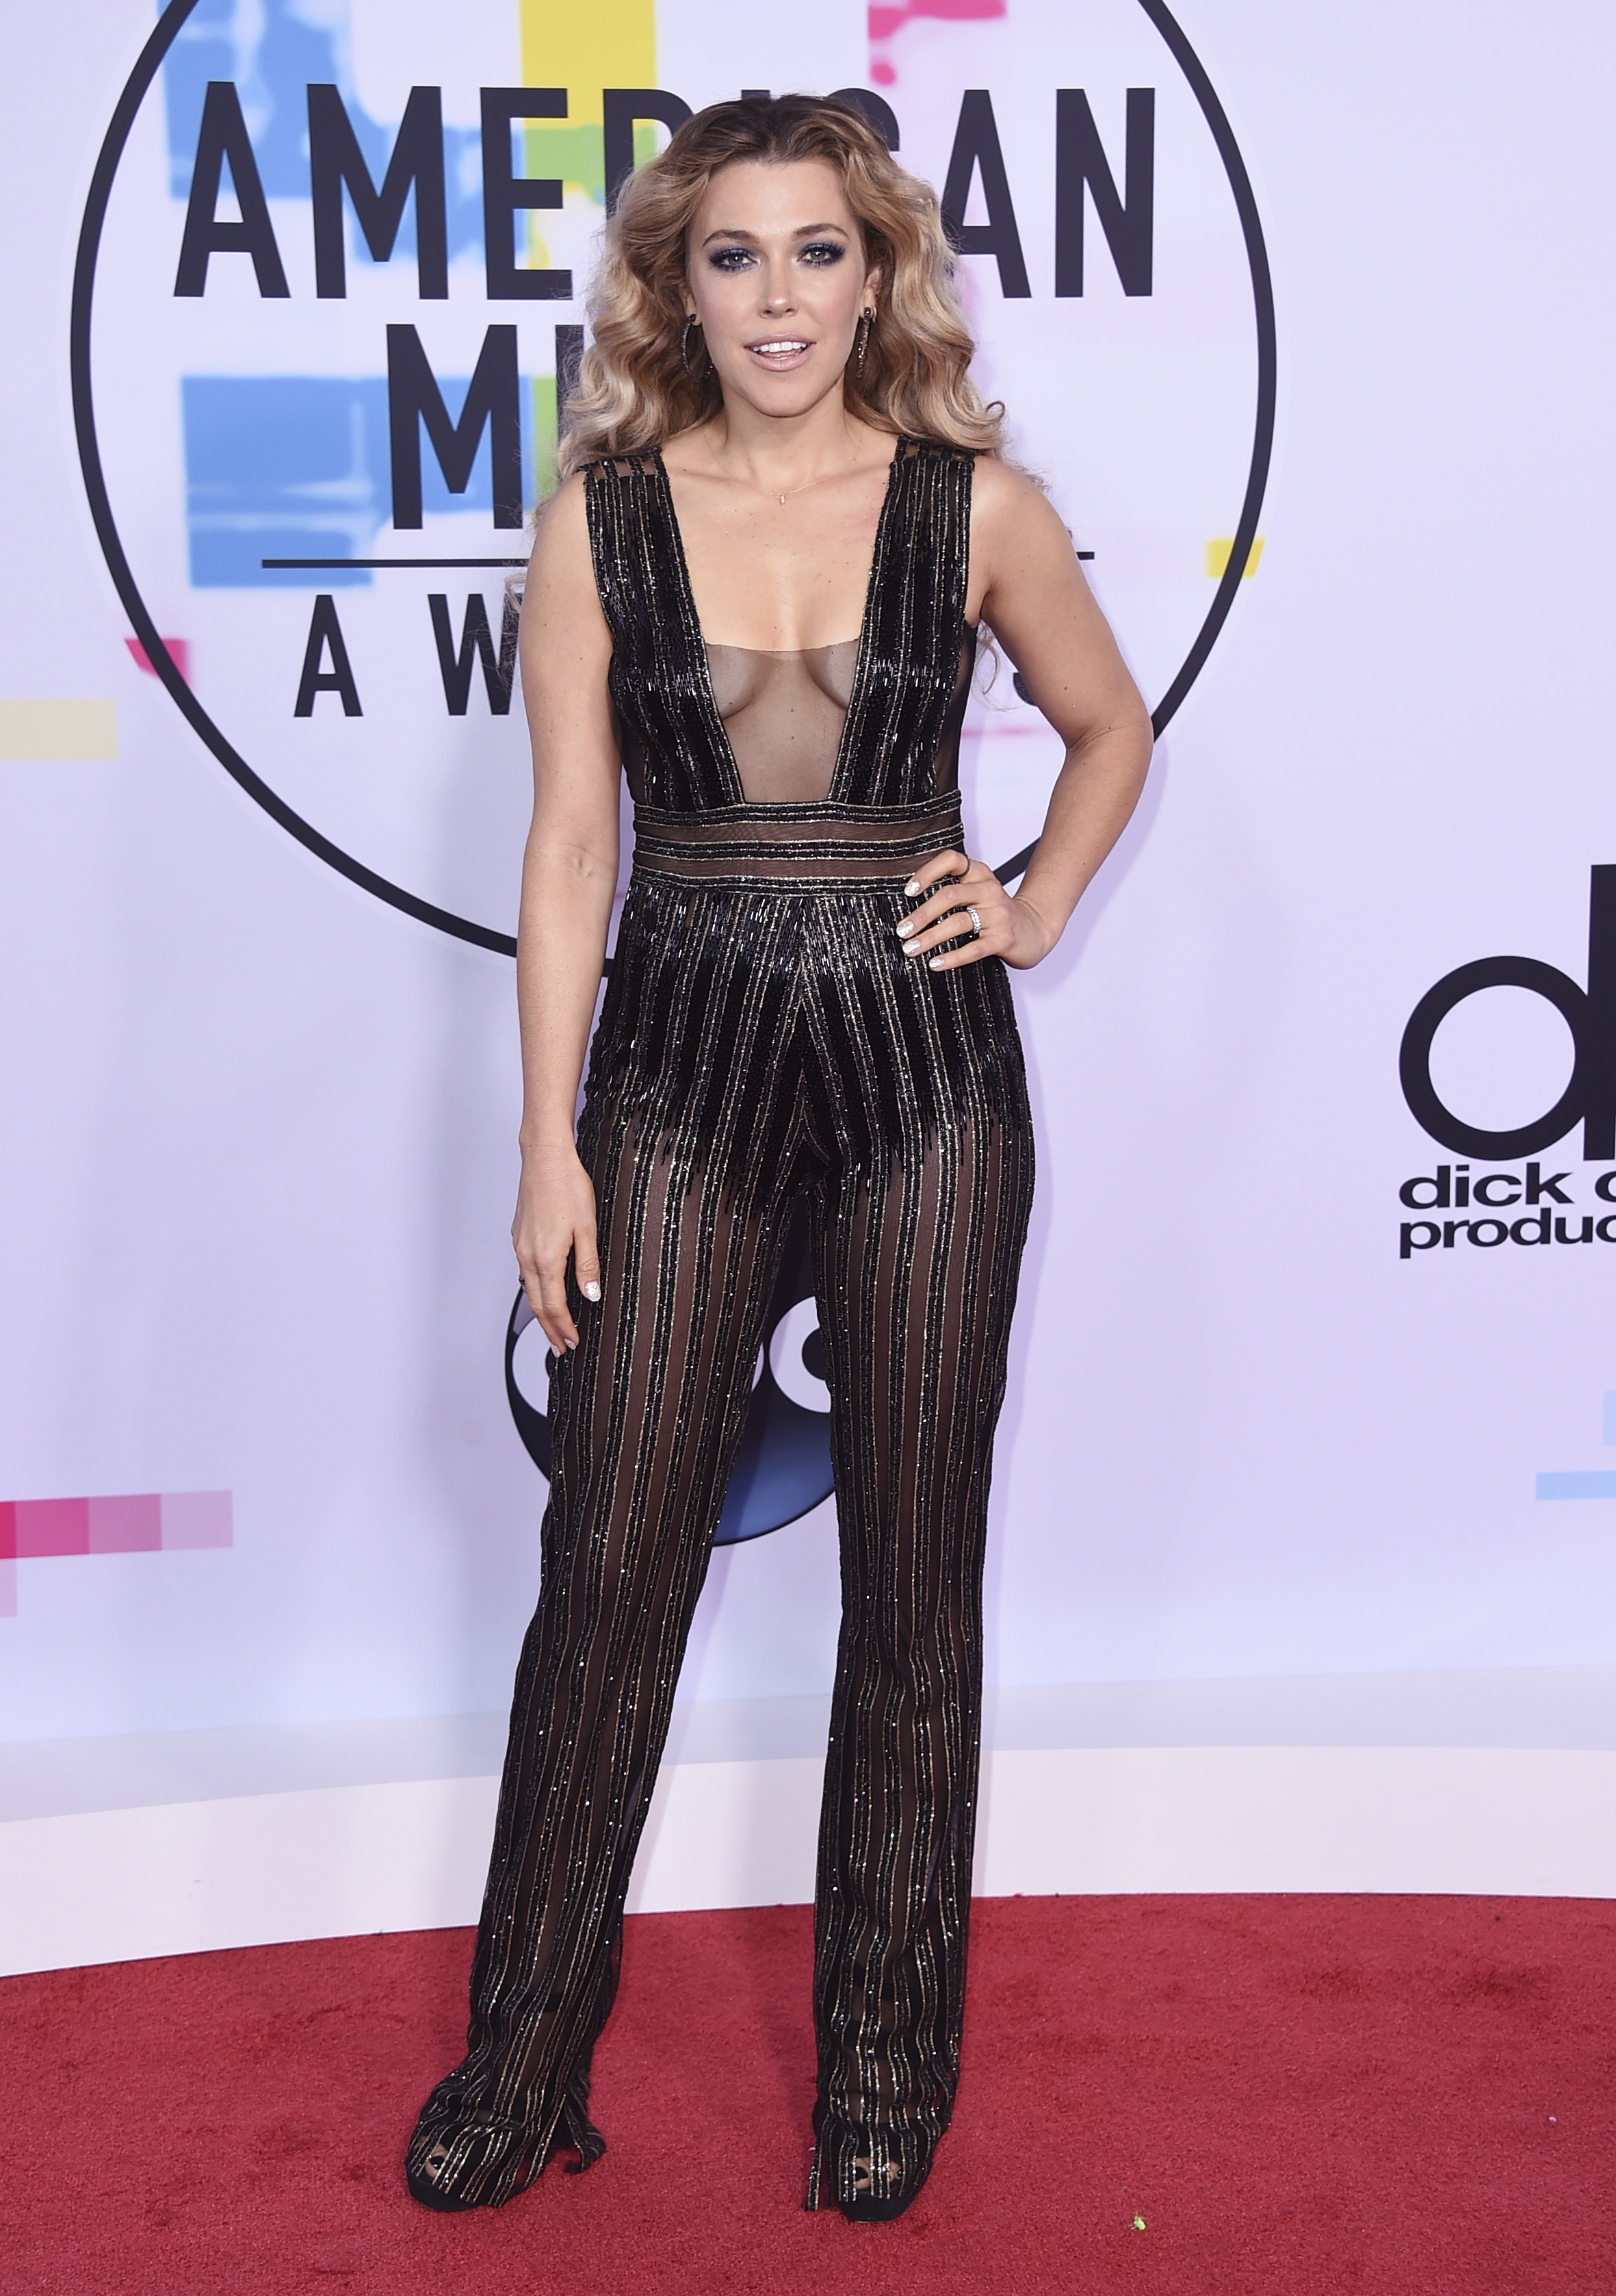 <div class='meta'><div class='origin-logo' data-origin='none'></div><span class='caption-text' data-credit='Jordan Strauss/Invision/AP'>Rachel Platten arrives at the American Music Awards at the Microsoft Theater on Sunday, Nov. 19, 2017, in Los Angeles.</span></div>